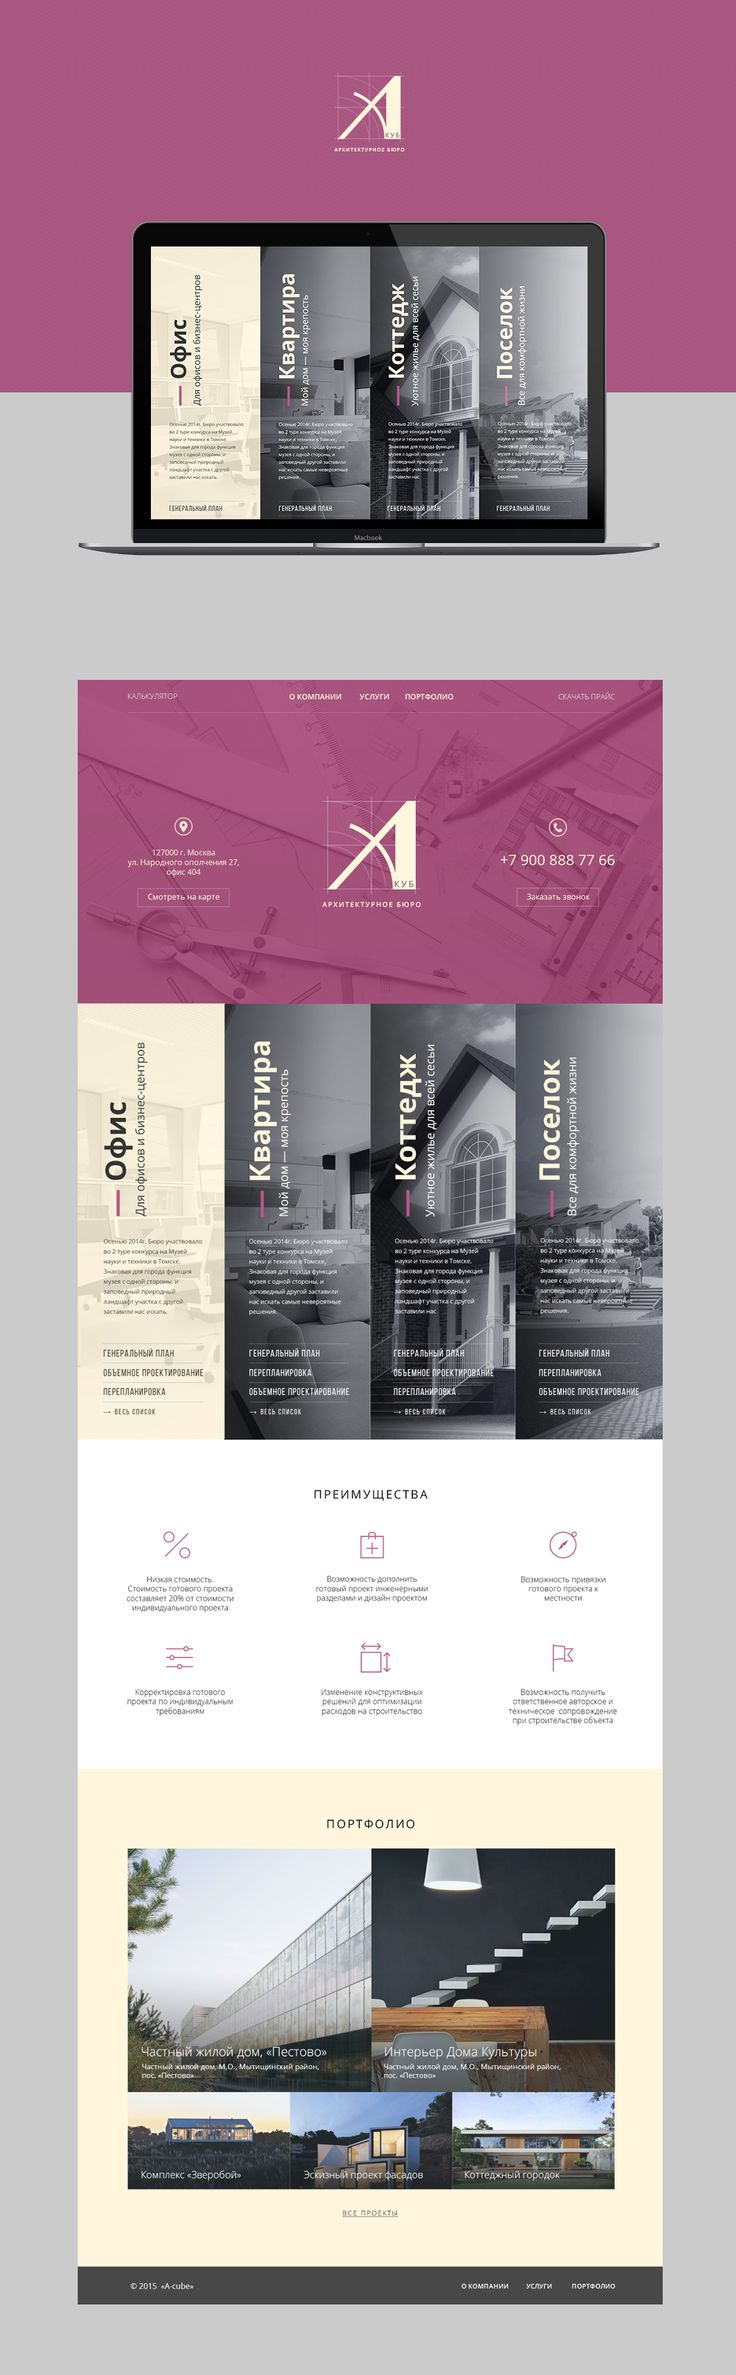 A-cube - Maxim Kovalenko. Graphic and web designer. Moscow.